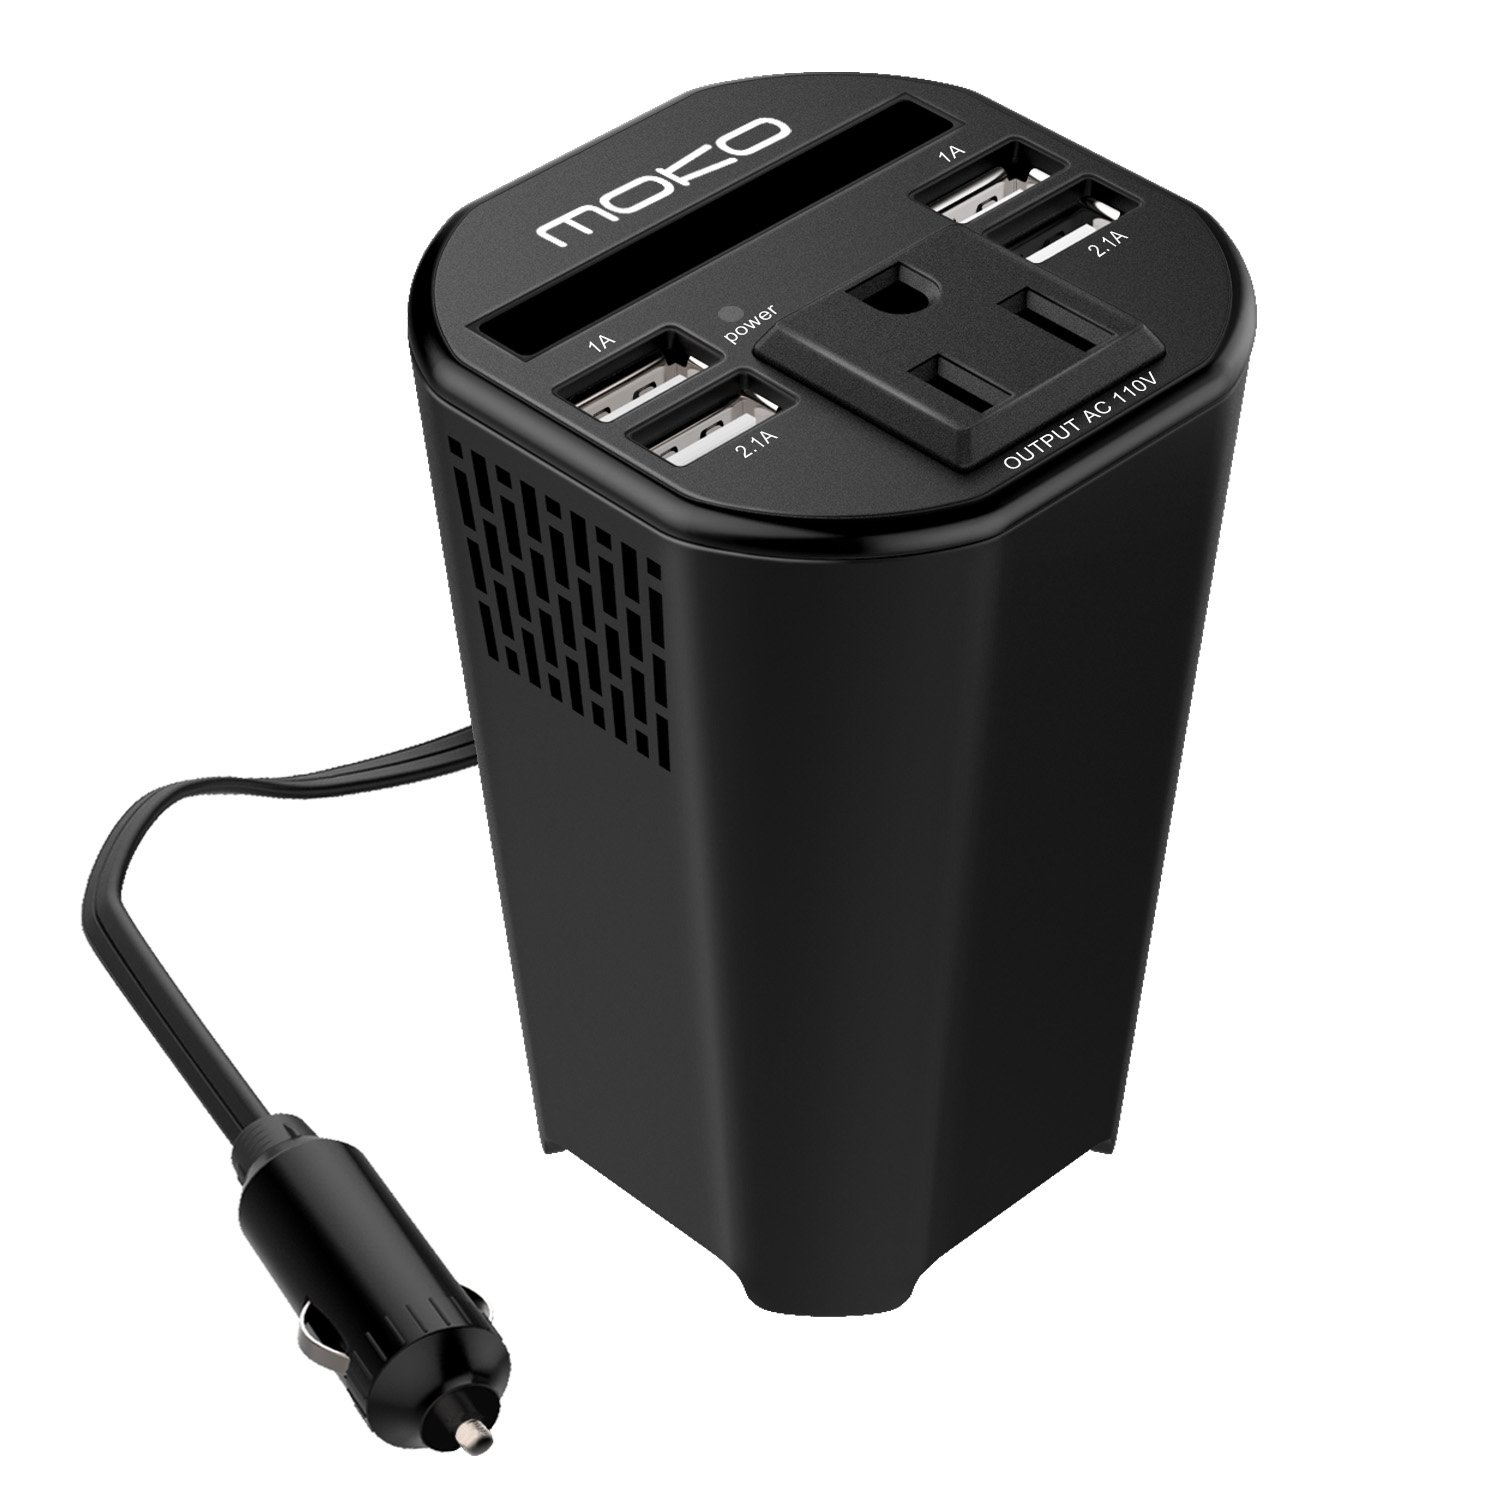 MoKo 150W Car Power Inverter, DC 12V to 110V AC Outlet Cup Holder Converter Adapter, with 4 USB Port Charger, for iPhone X/8/8 Plus, MacBook, iPad Pro, Chromebook, Galaxy S8 and etc. (Black)